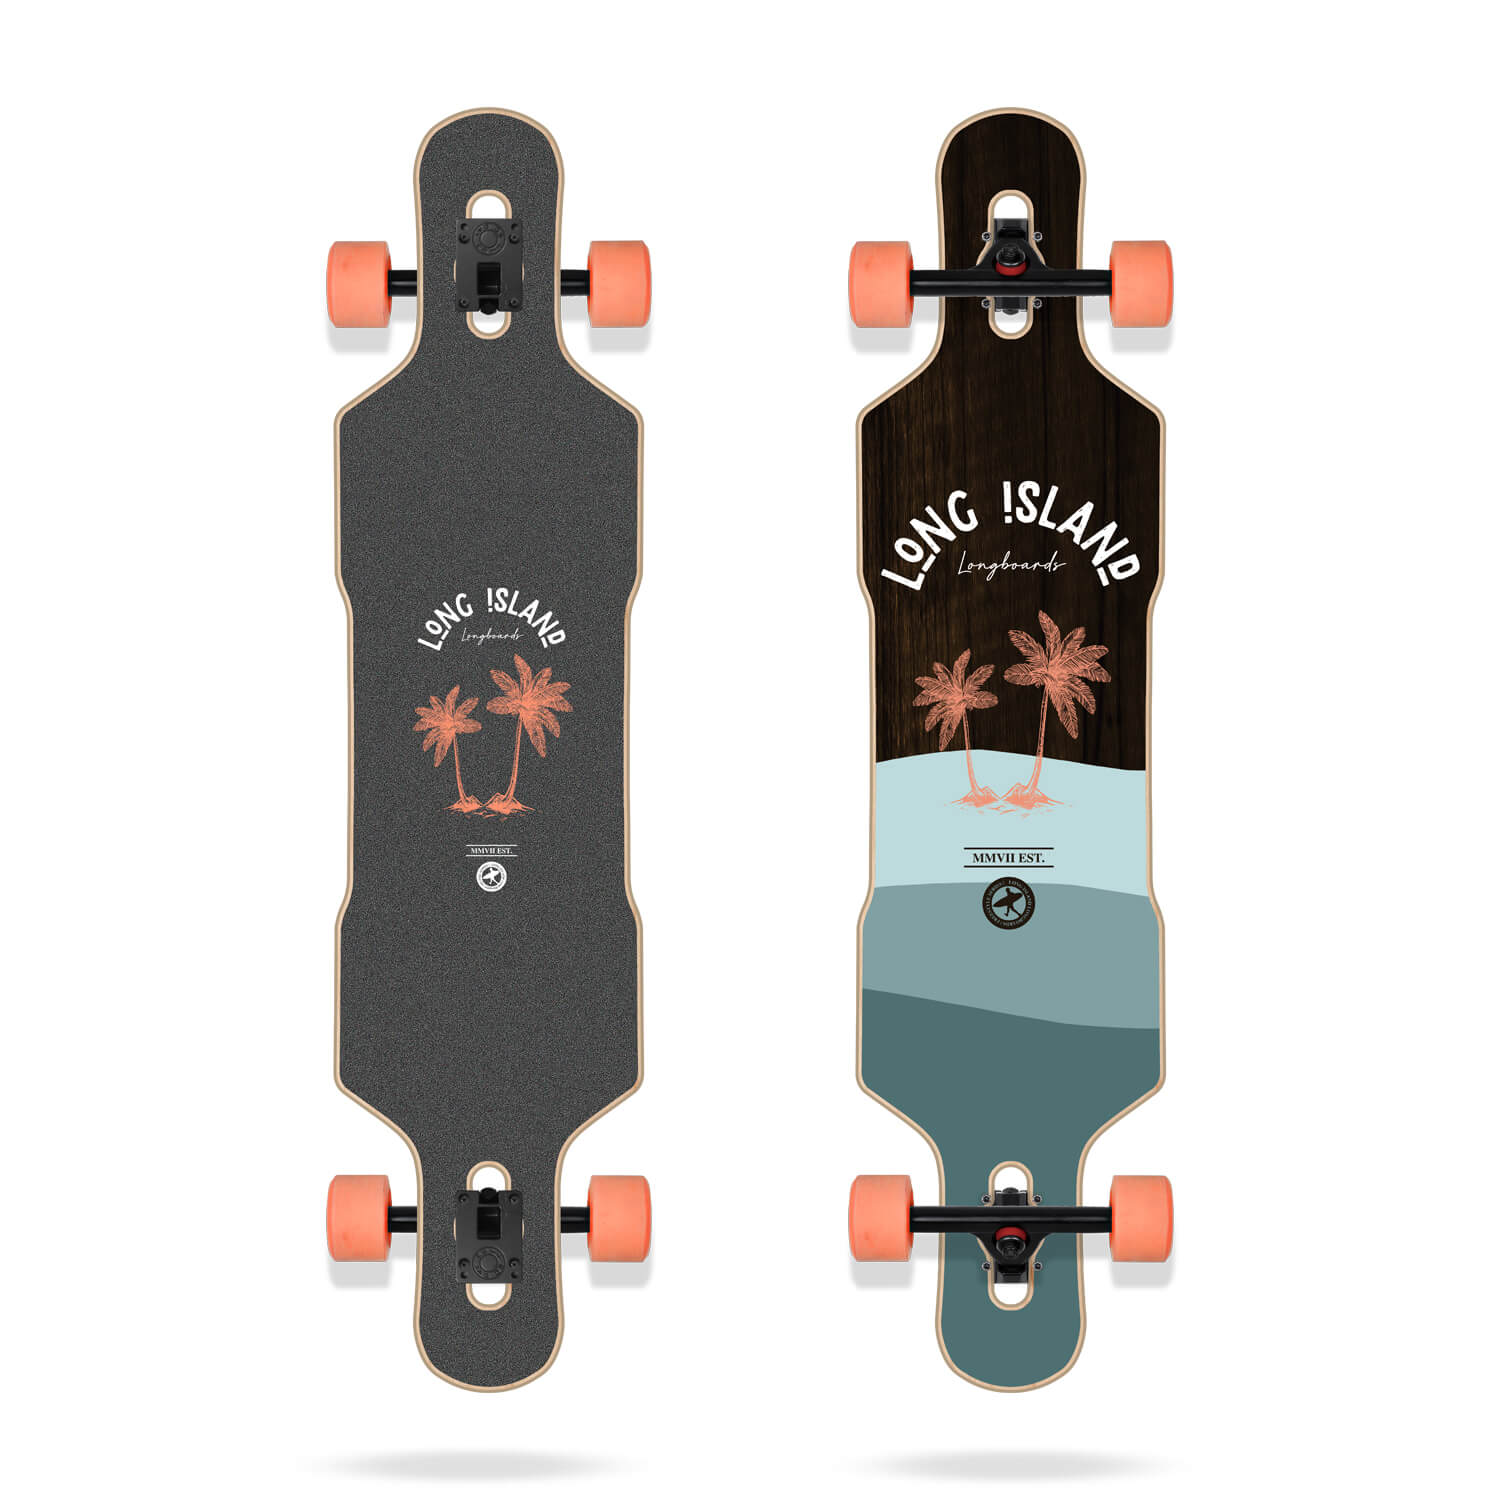 "Long Island Stamp 41.65"" Drop Longboard"